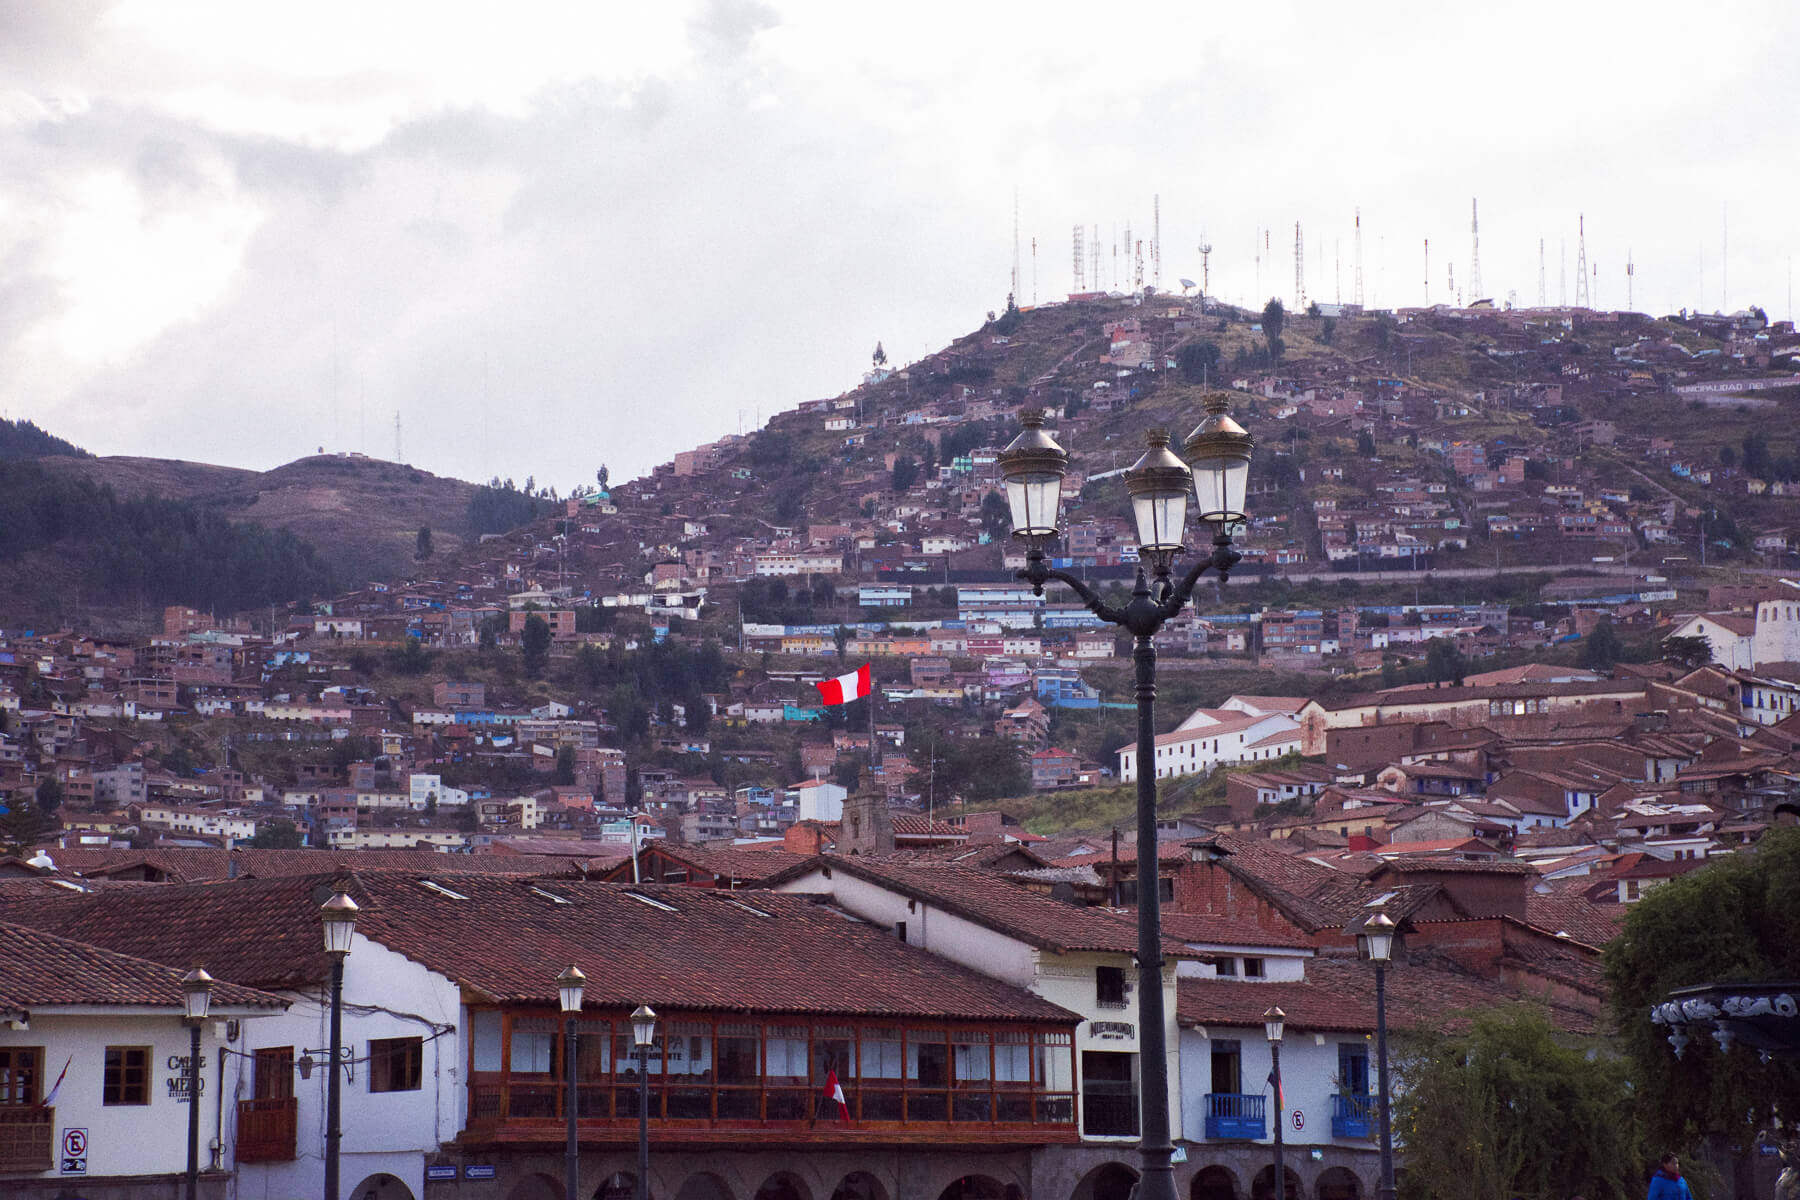 Overlooking the hills behind Cusco, filled with houses and ruins